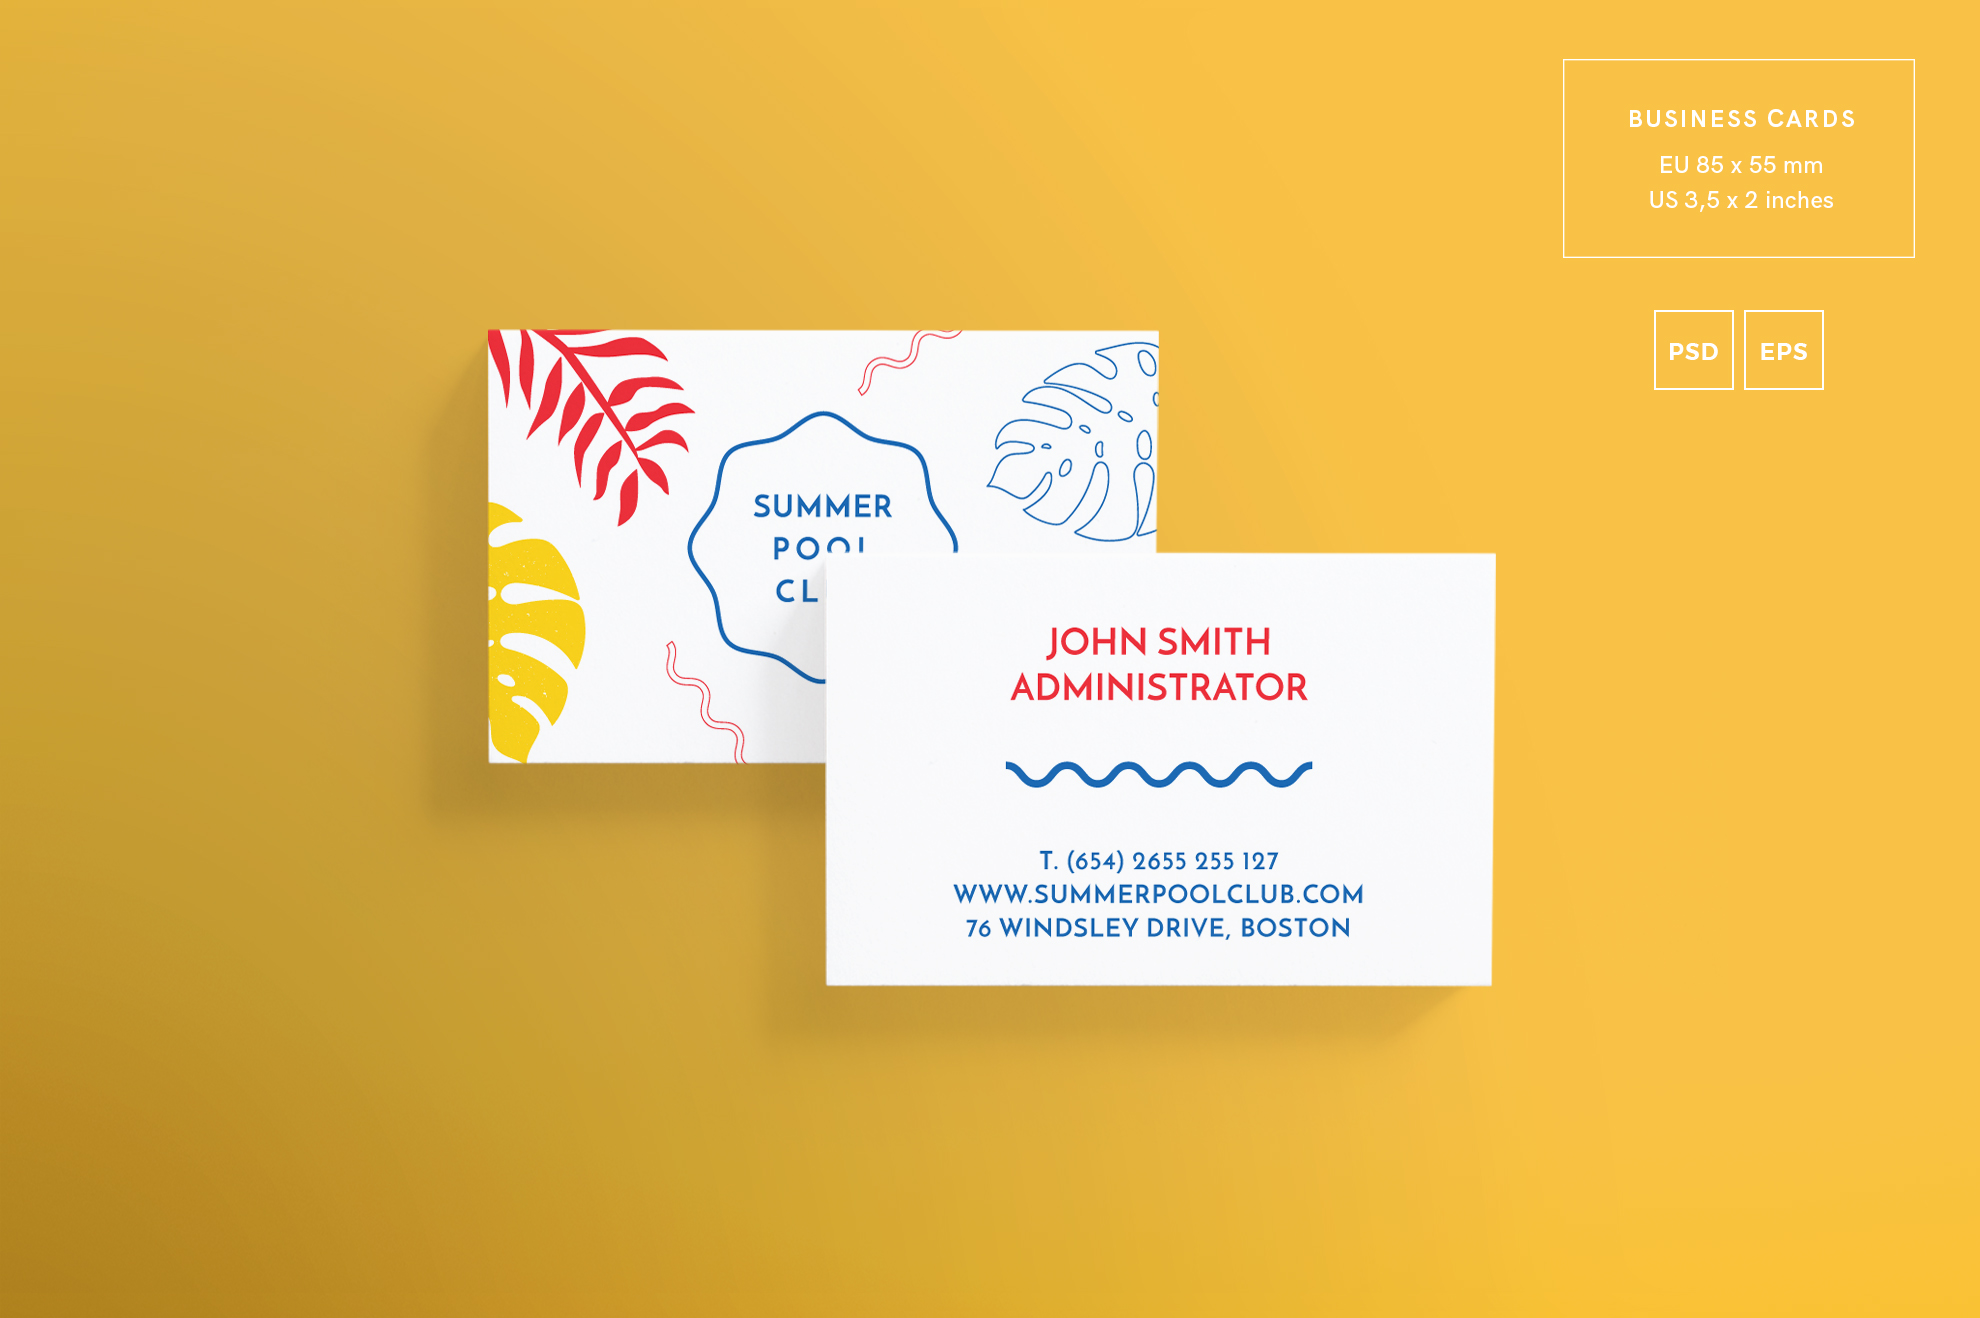 Summer pool club business card design t design bundles summer pool club business card design templates kit example image 2 reheart Choice Image